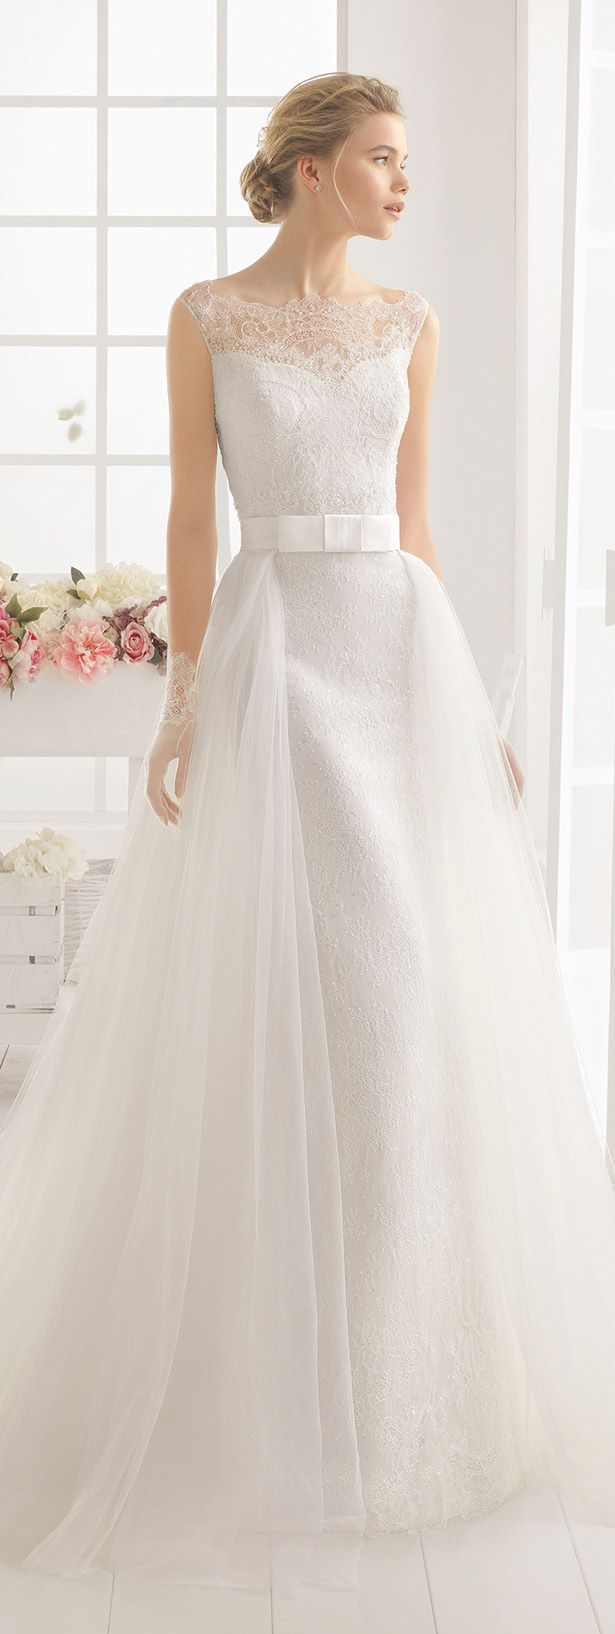 Aire Barcelona 2016 Wedding Dress - Wedding Dresses with Detachable Skirts